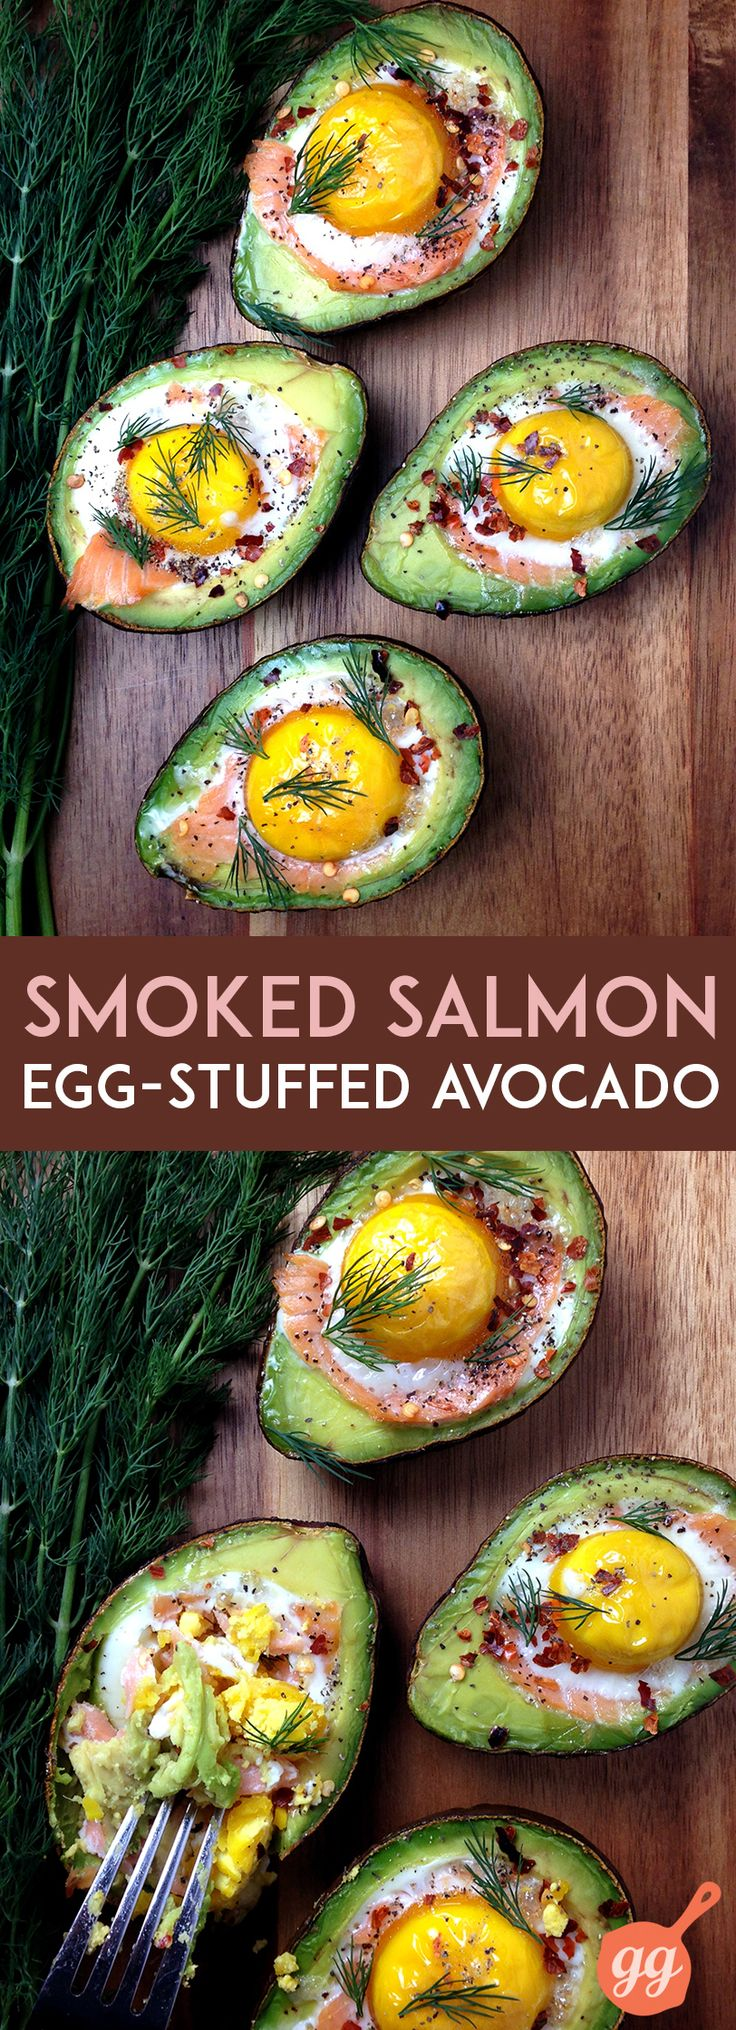 Smoked Salmon Egg Stuffed Avocado | GrokGrub.com #breakfast #healthy #omega3 http://freshplanetflavor.com/smoked-salmon-egg-stuffed-avocados/